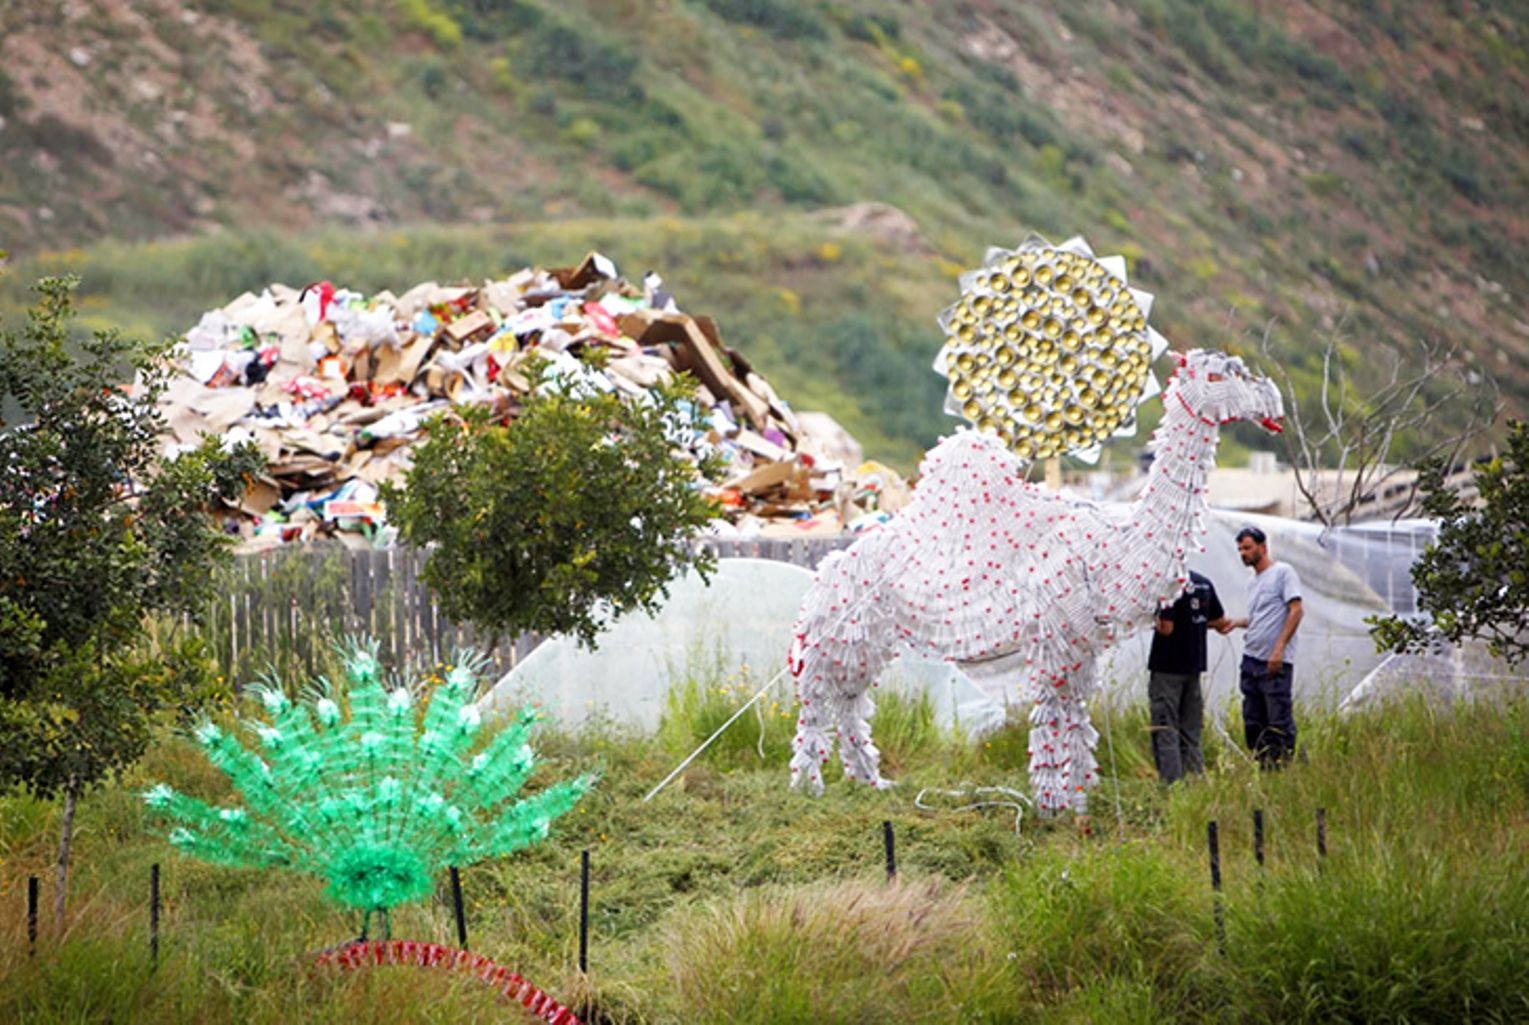 Environmental sculptures made from trash at Hiriya. Photo via Inhabitat.com